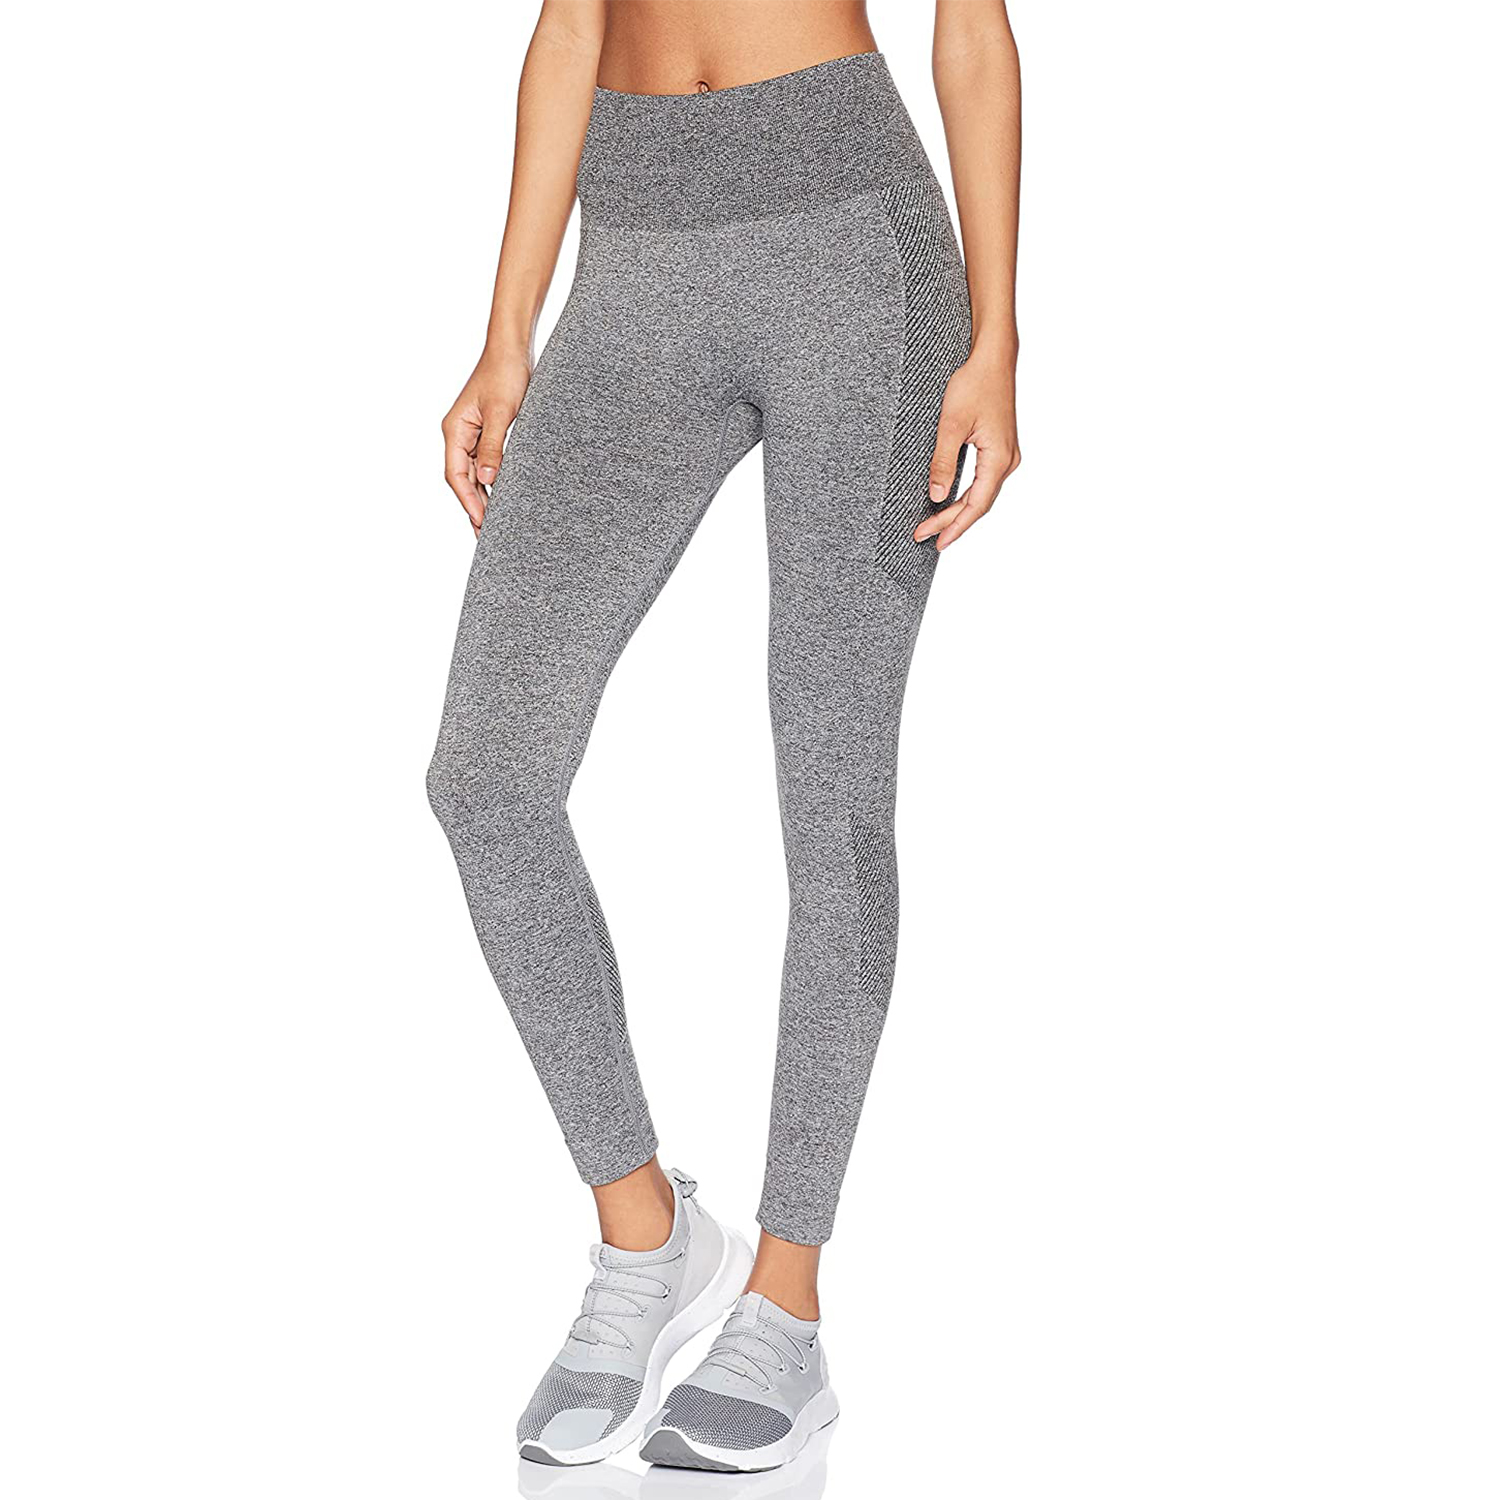 Starter Seamless Light Compression Workout Leggings